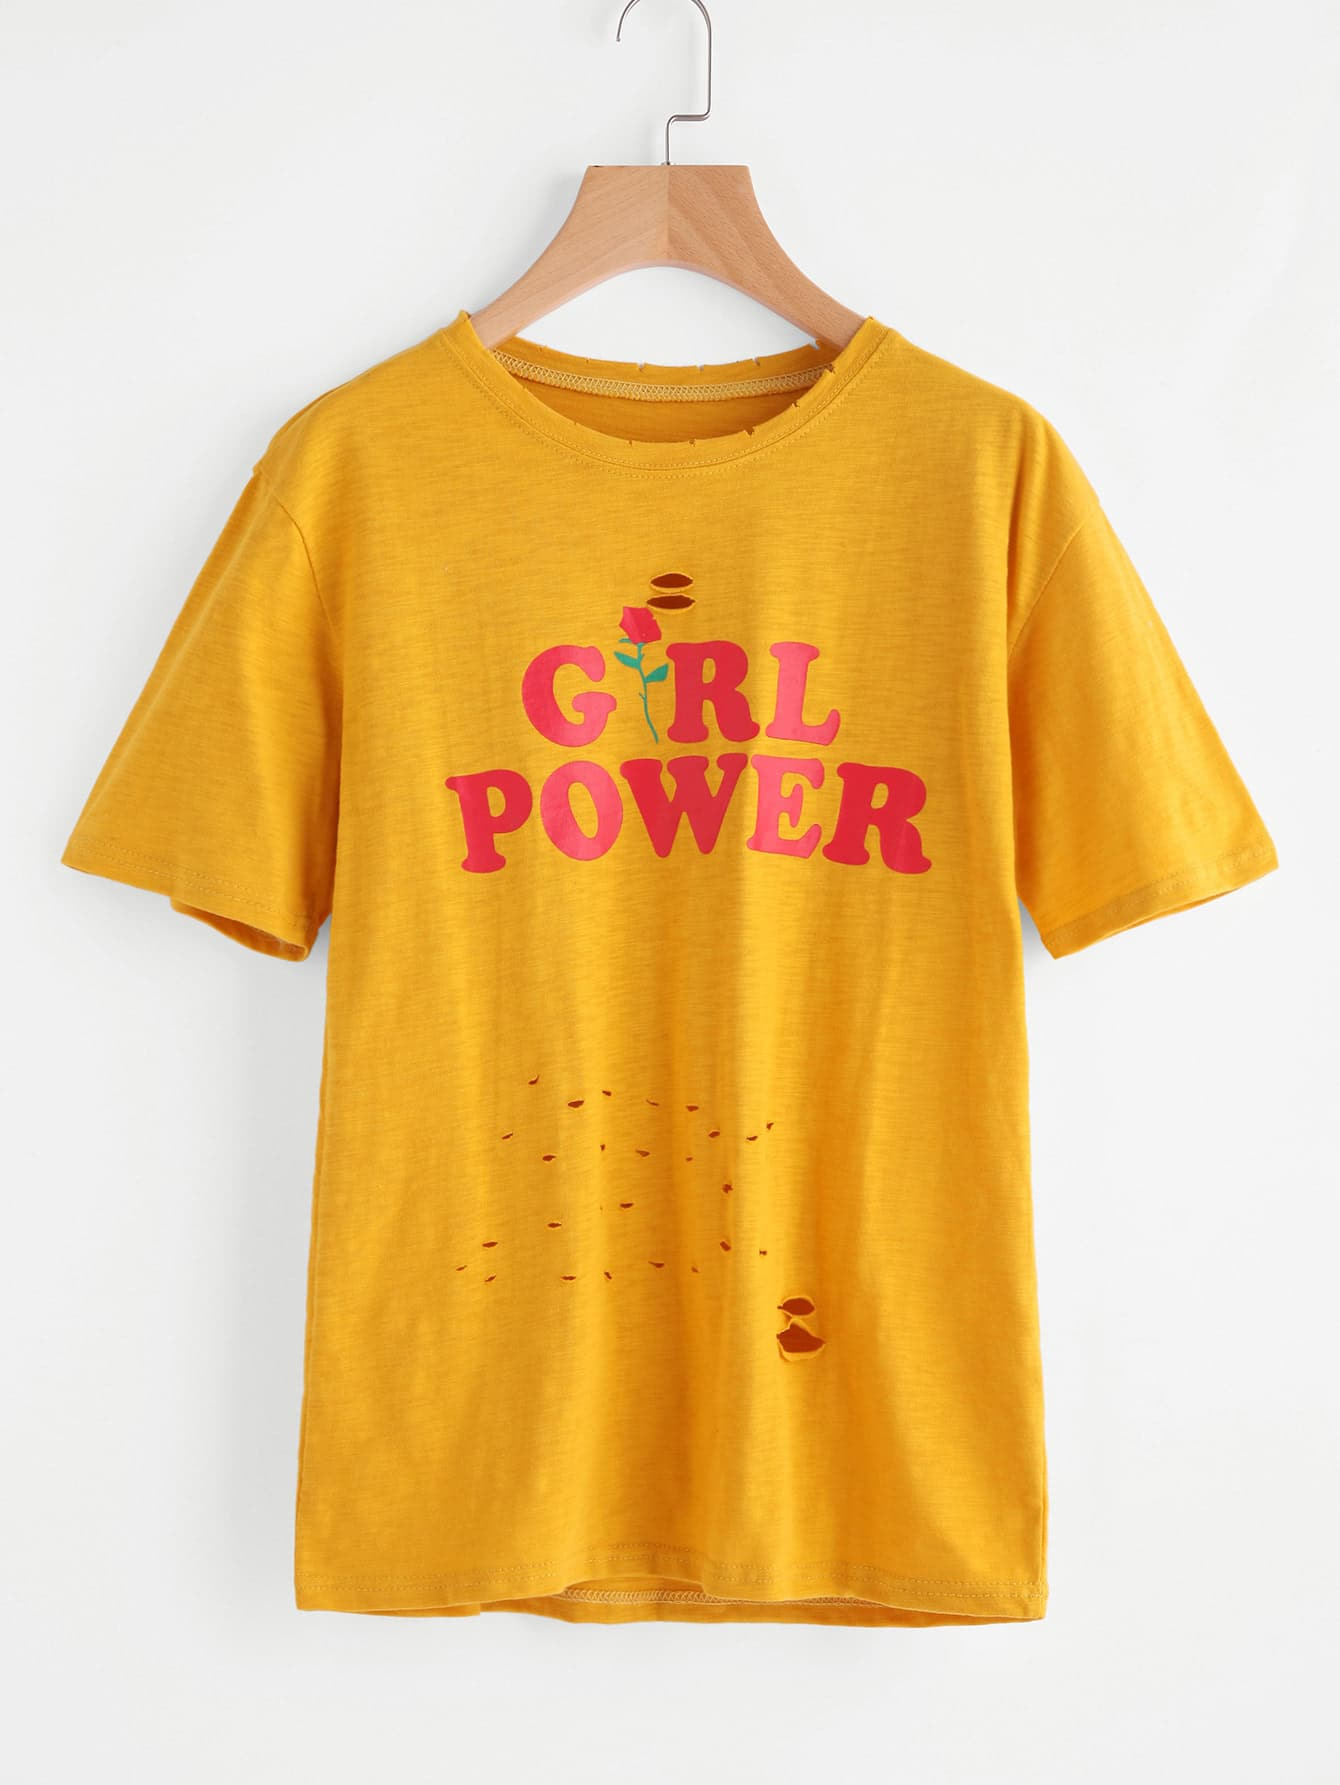 yellow t shirt with girl power text in red